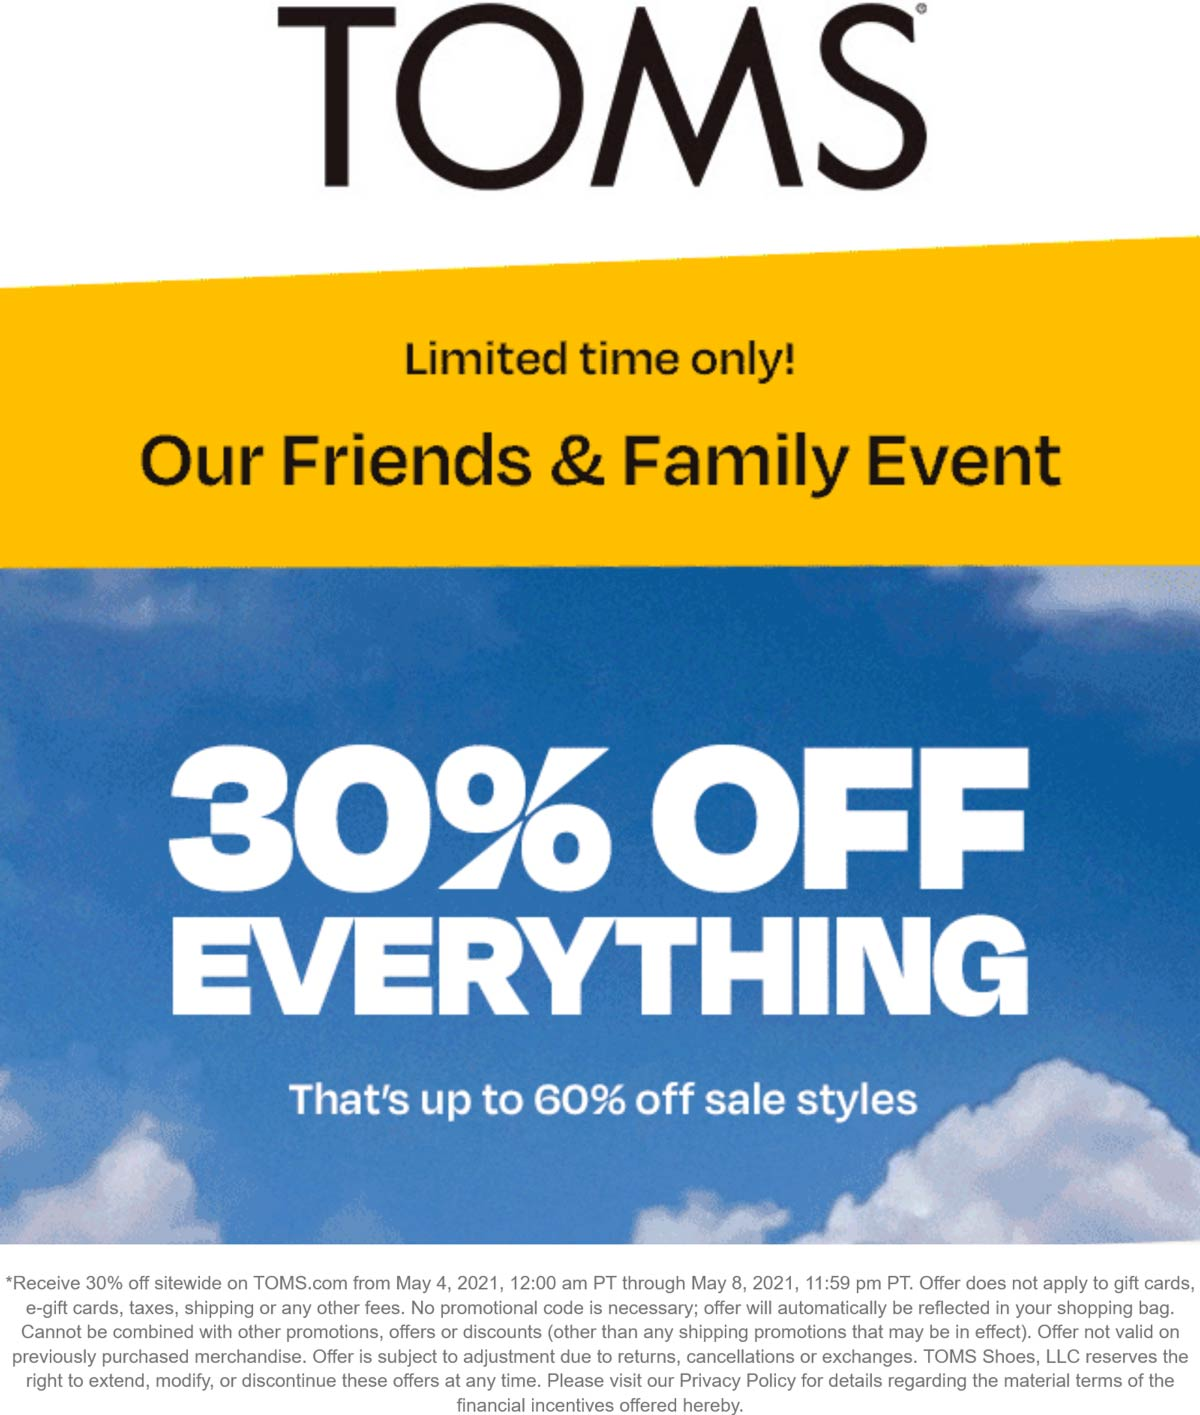 Toms coupons & promo code for [June 2021]